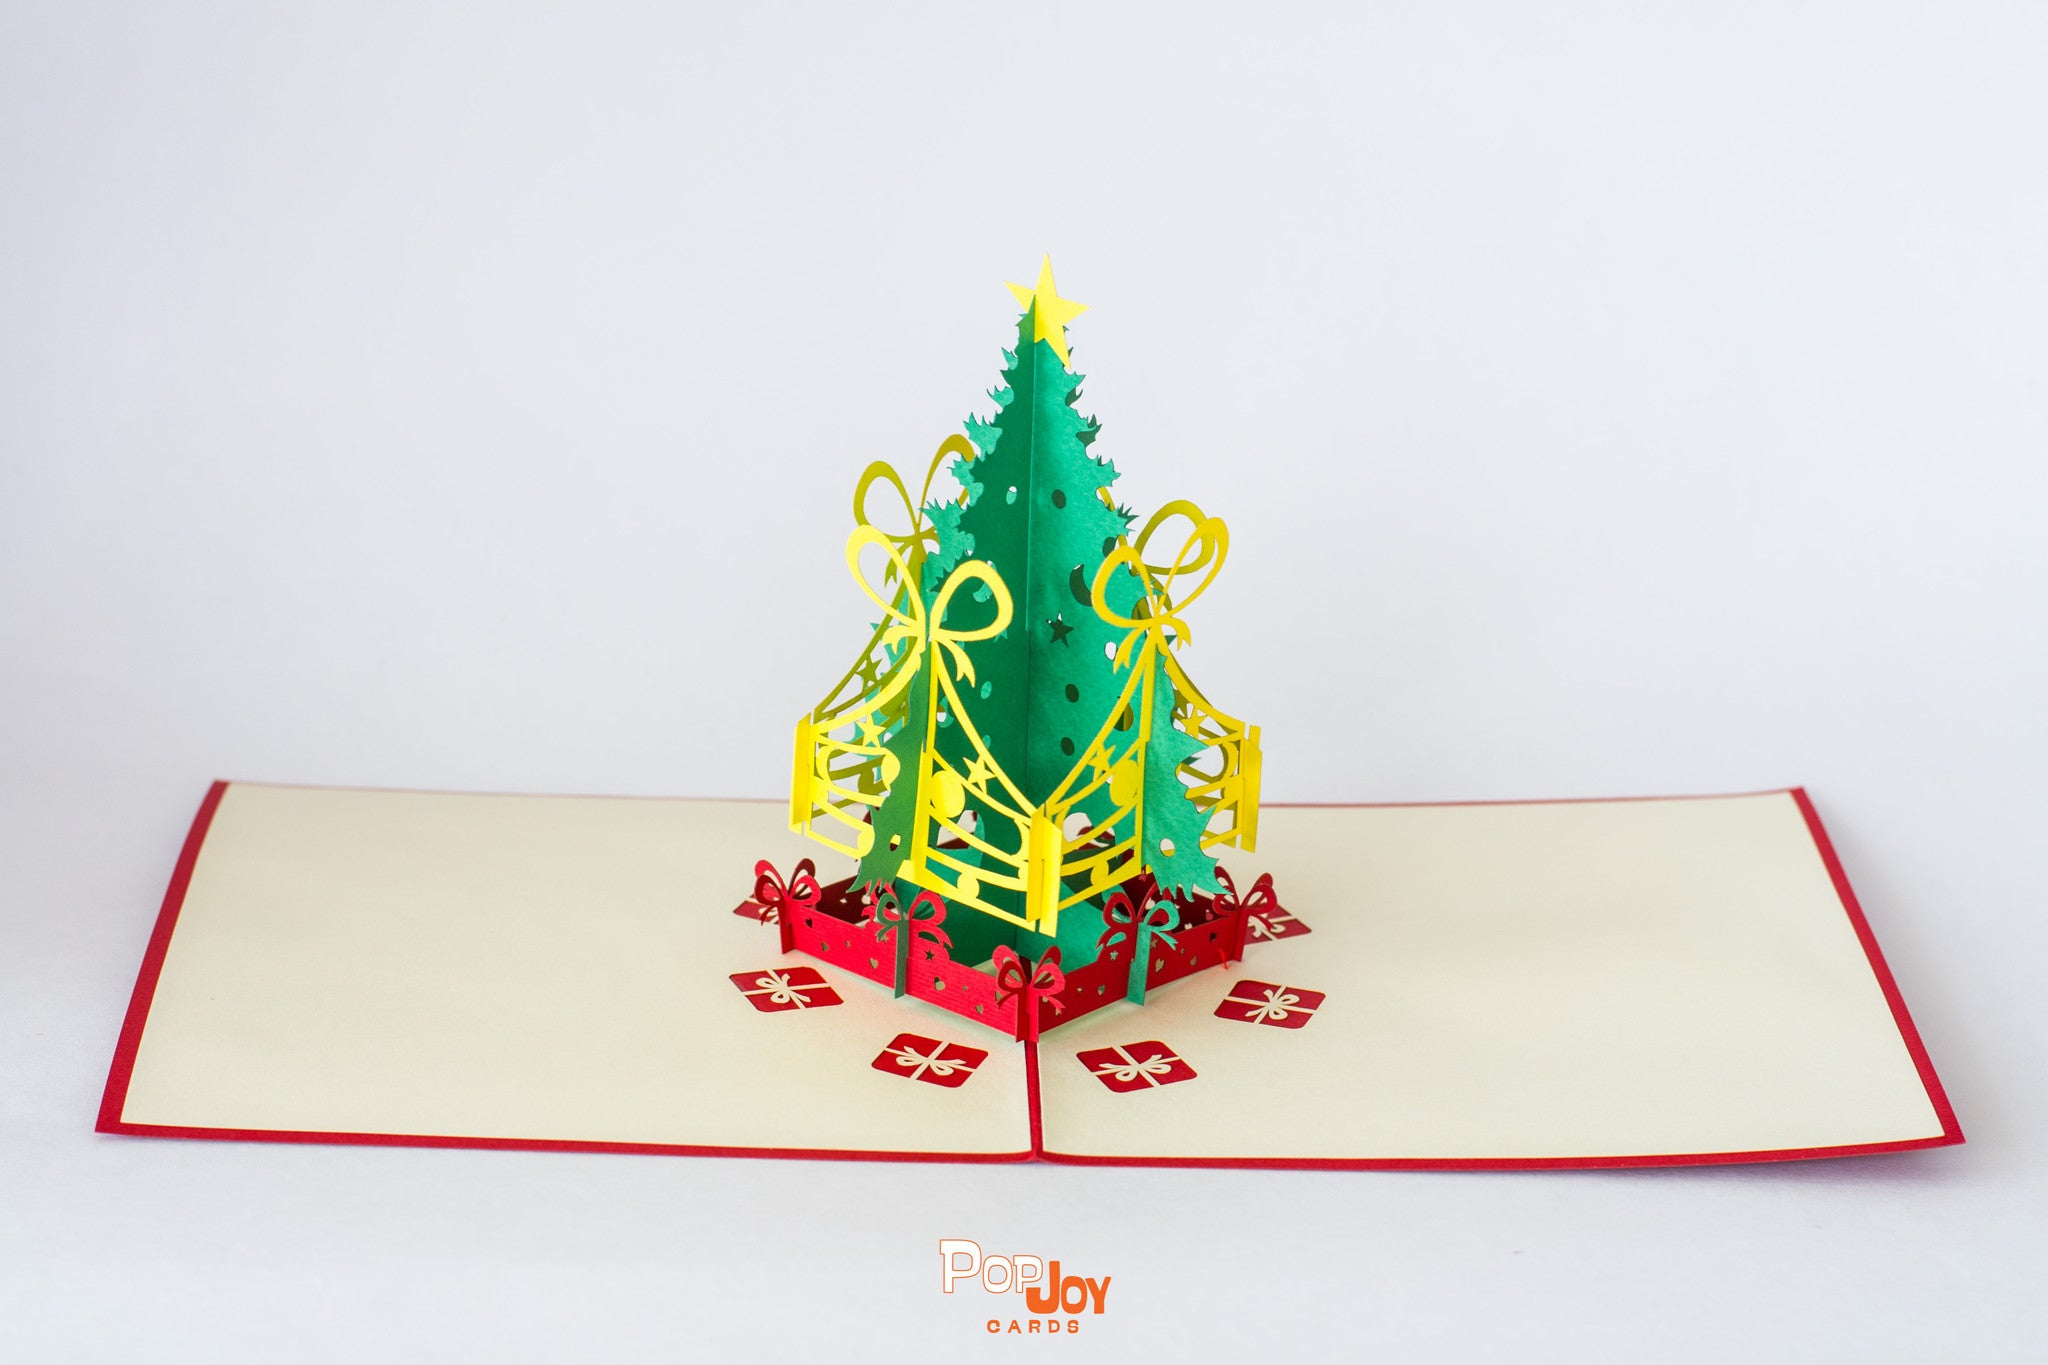 Pop Joy Card - Christmas Tree With Gifts